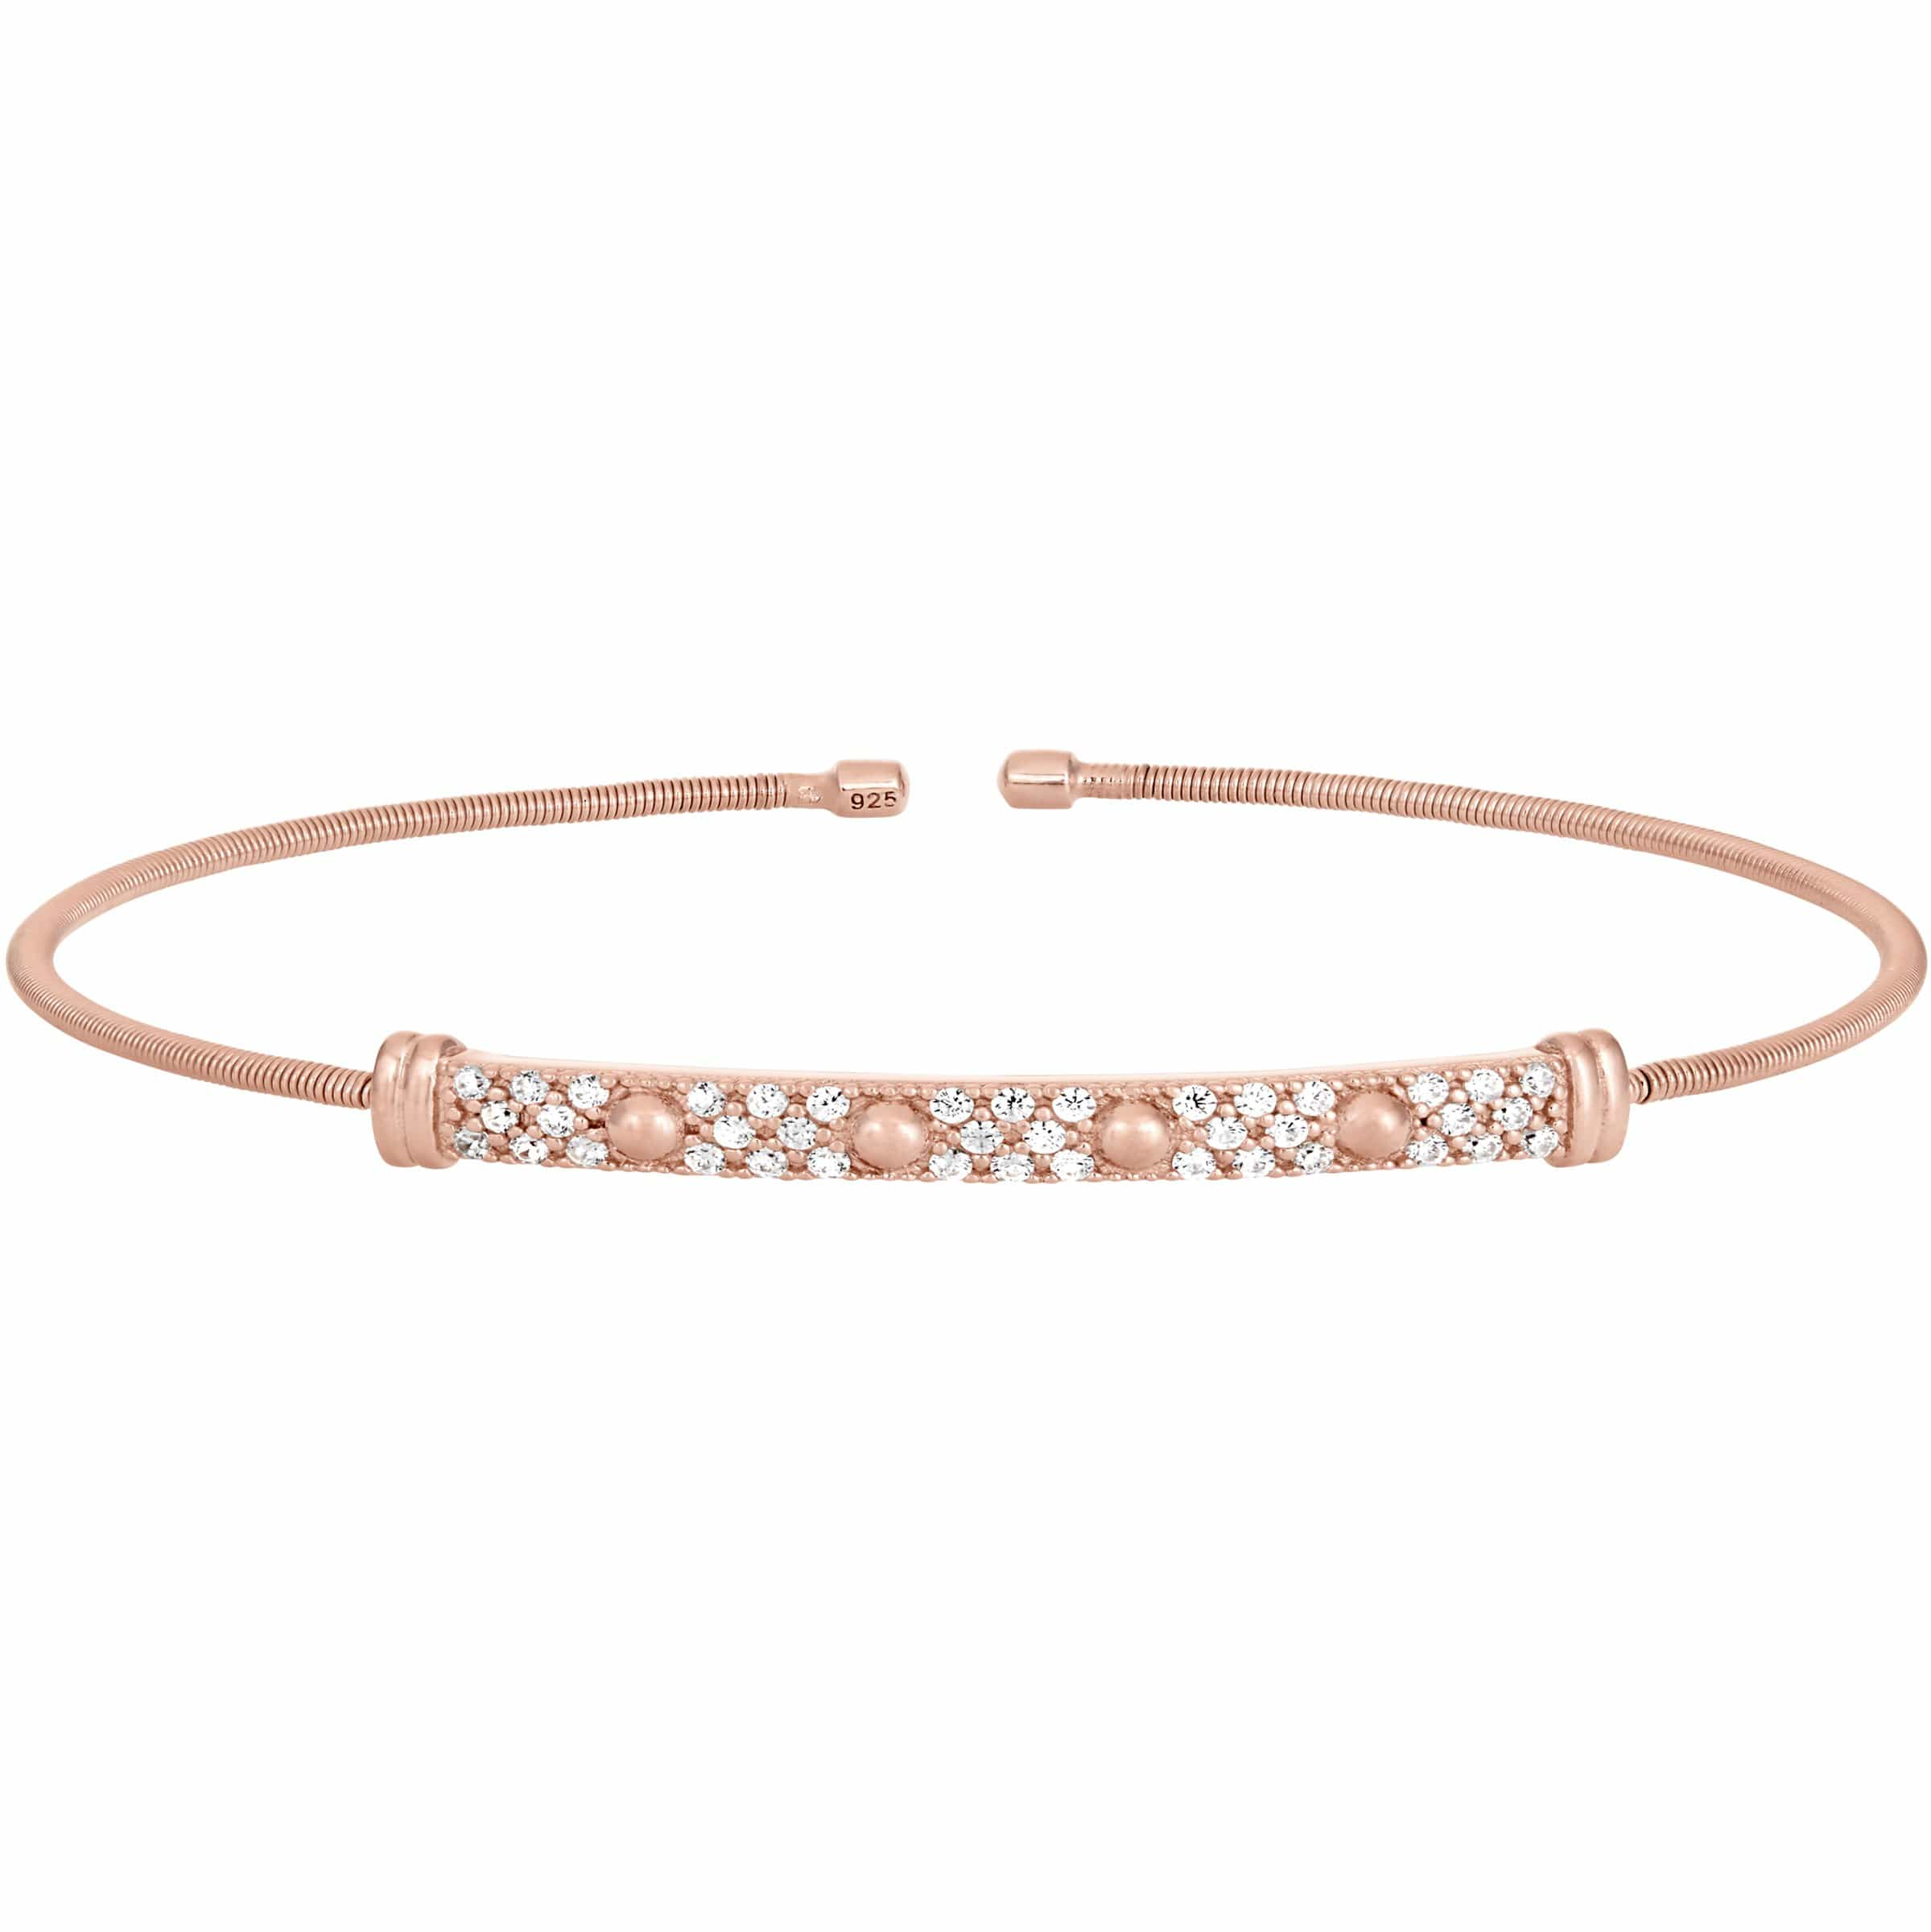 Rose Gold Finish Sterling Silver Cable Cuff Bracelet - LL7025B-RG-Kelly Waters-Renee Taylor Gallery